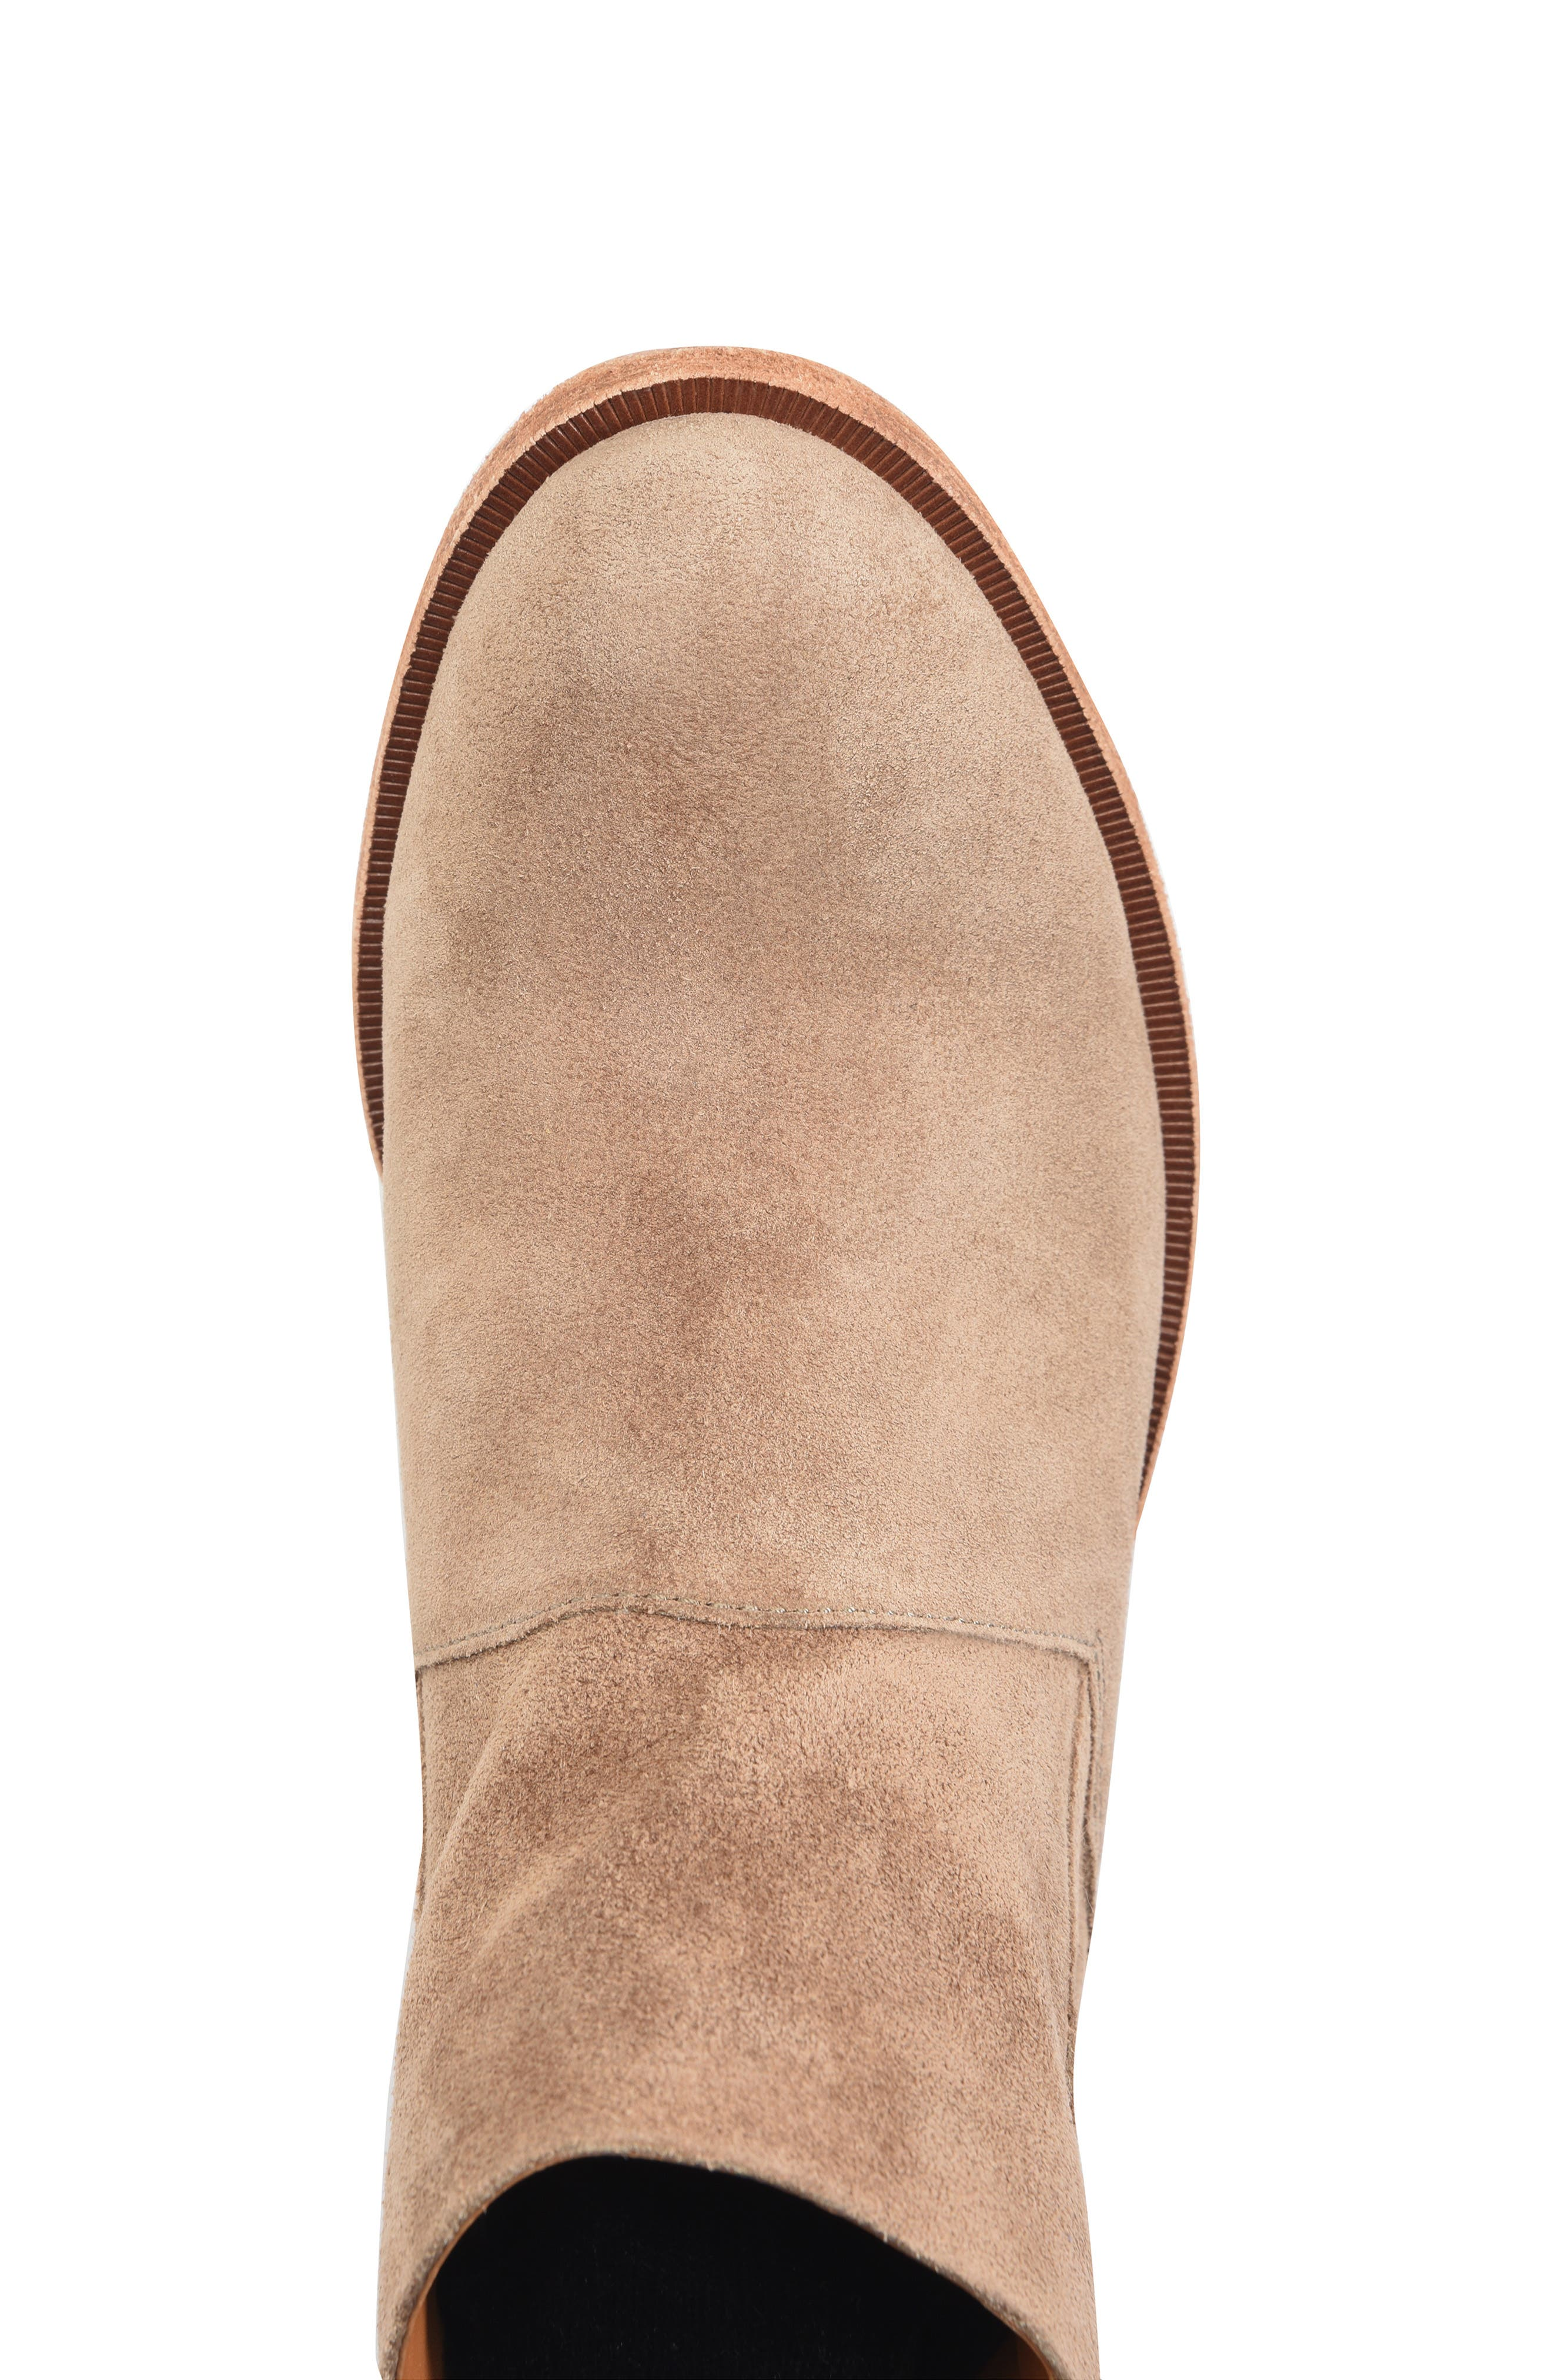 Ryder Ankle Boot,                             Alternate thumbnail 5, color,                             TAUPE GREY SUEDE